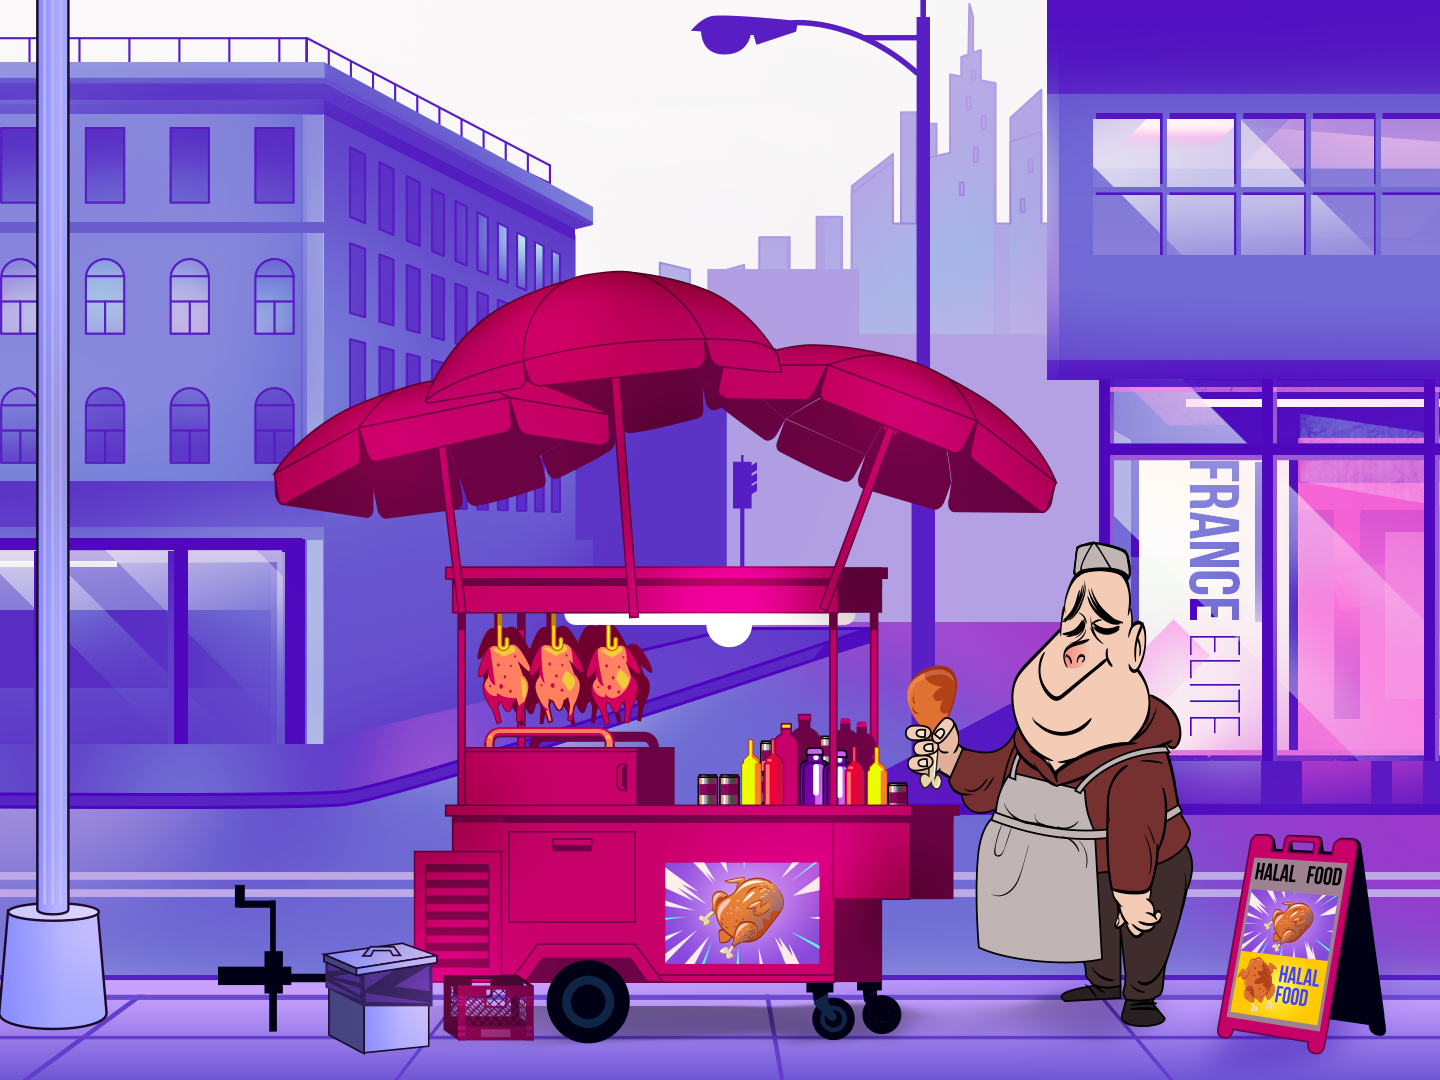 Food Truck, American chicken, with Street Vendor by Anna Ark on Dribbble